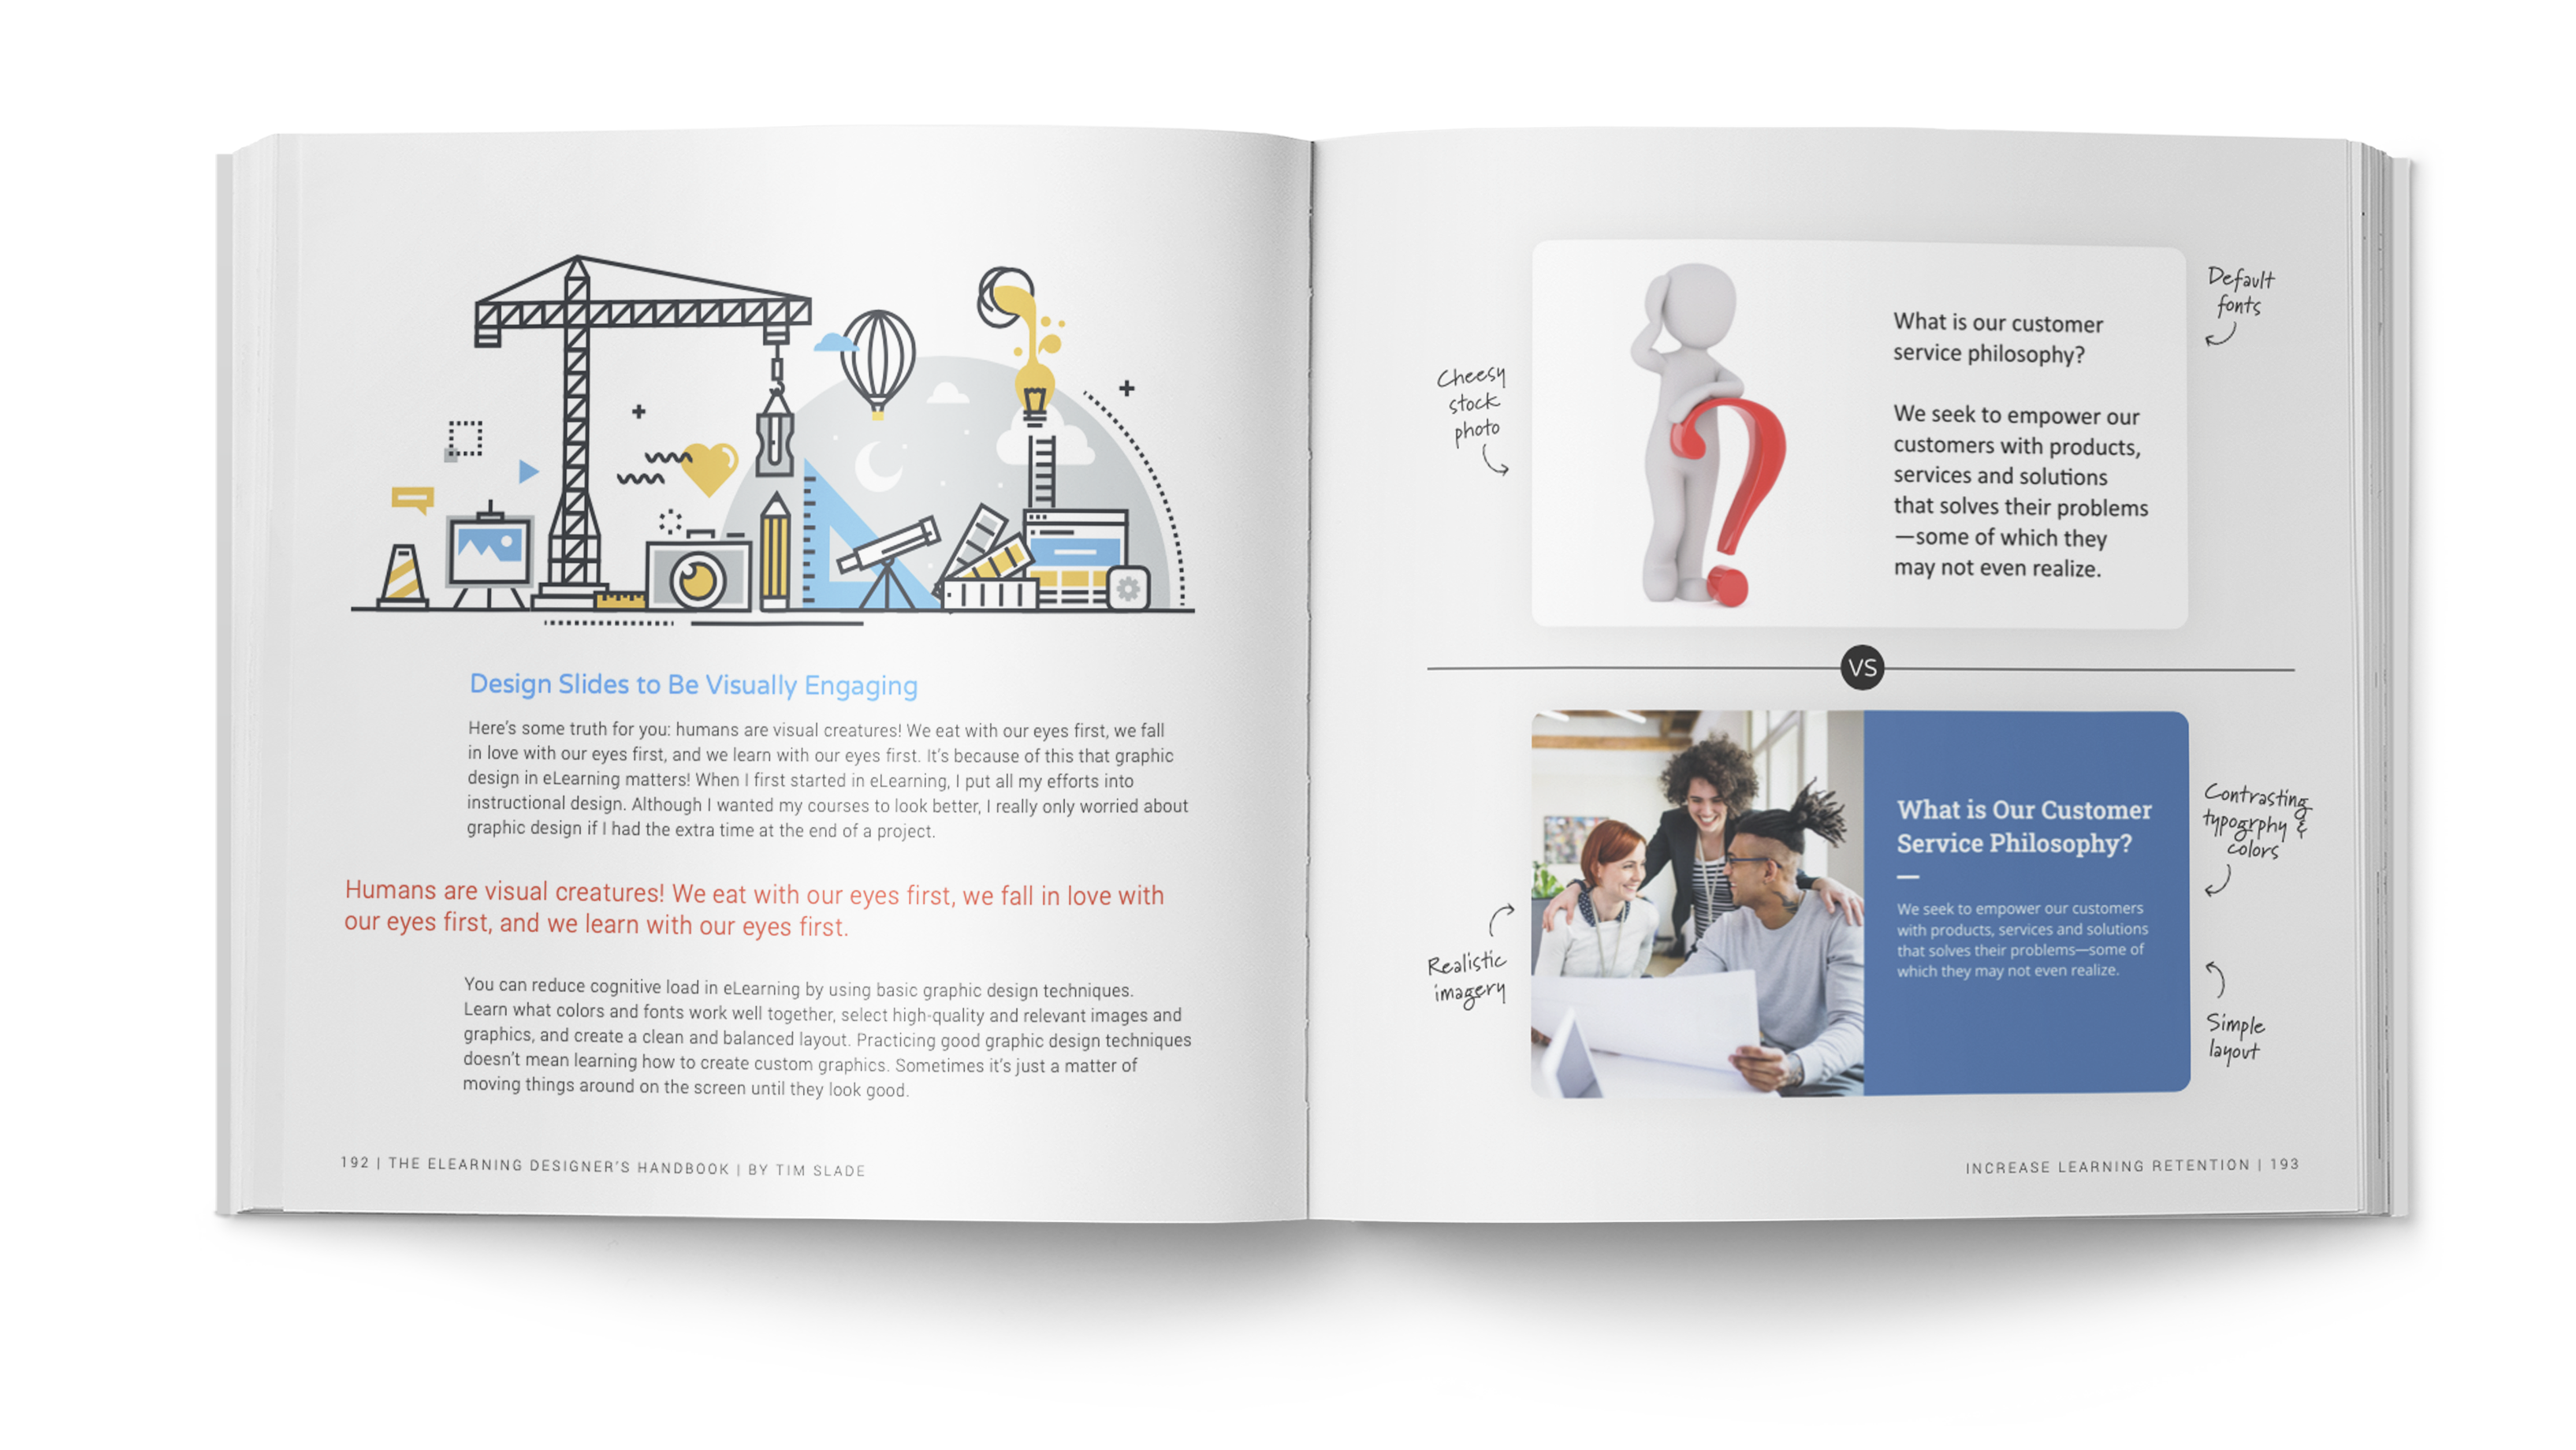 The eLearning Designer's Handbook by Tim Slade | Increase Learning Retention | Freelance eLearning Designer | The eLearning Designer's Academy